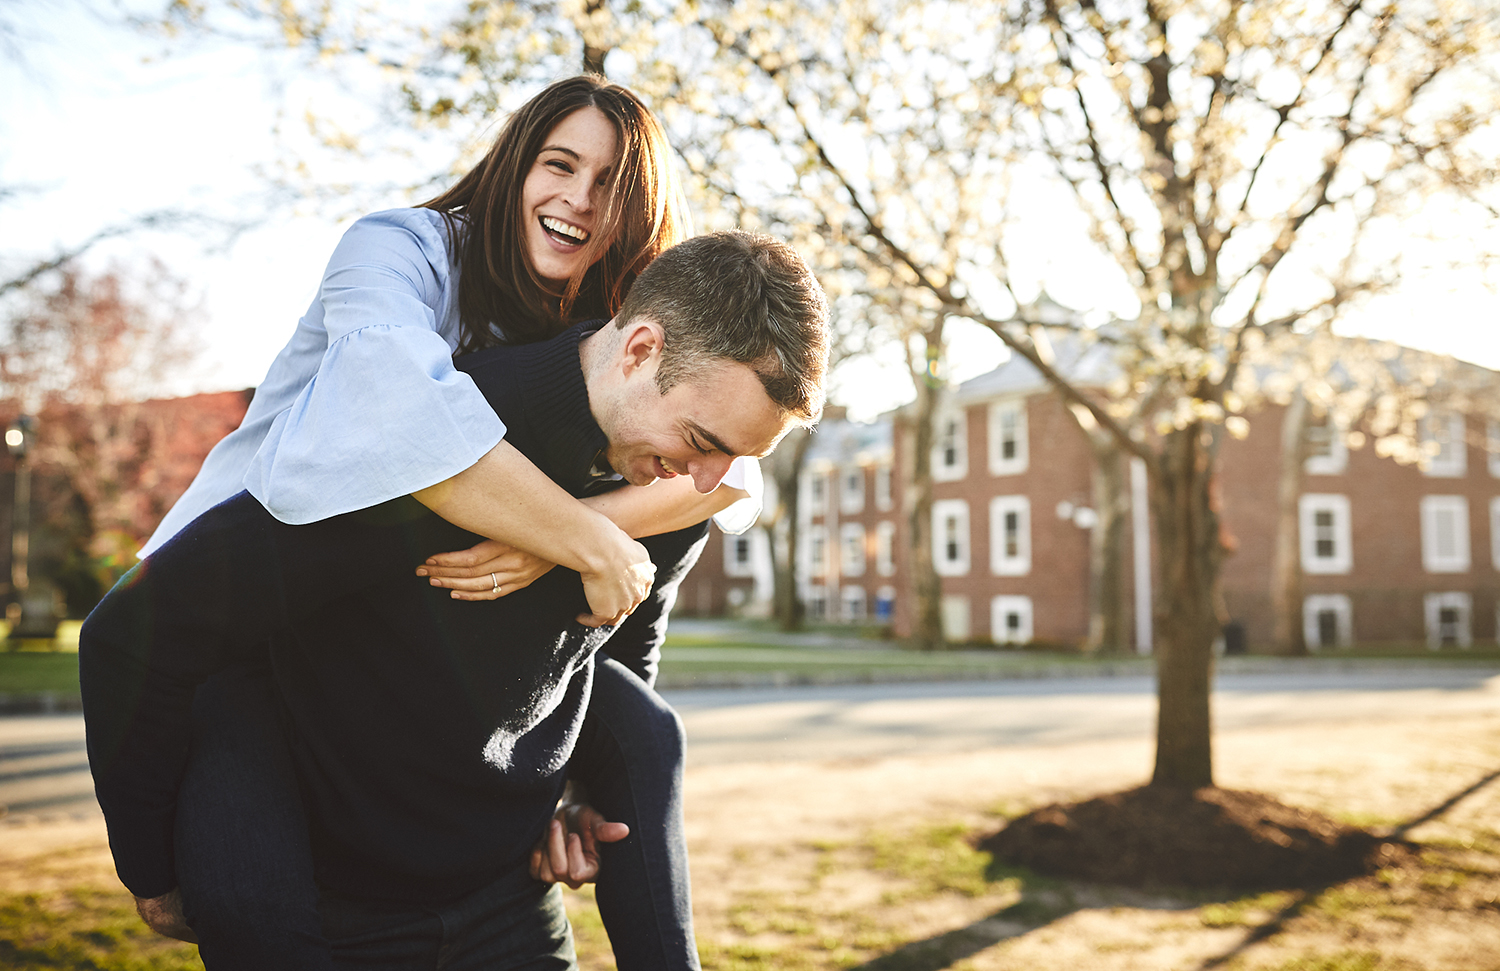 180422_StevensInstitureofTechnologyEngagementPhotography_HobokenEngagement Photography_By_BriJohnsonWeddings_0017.jpg